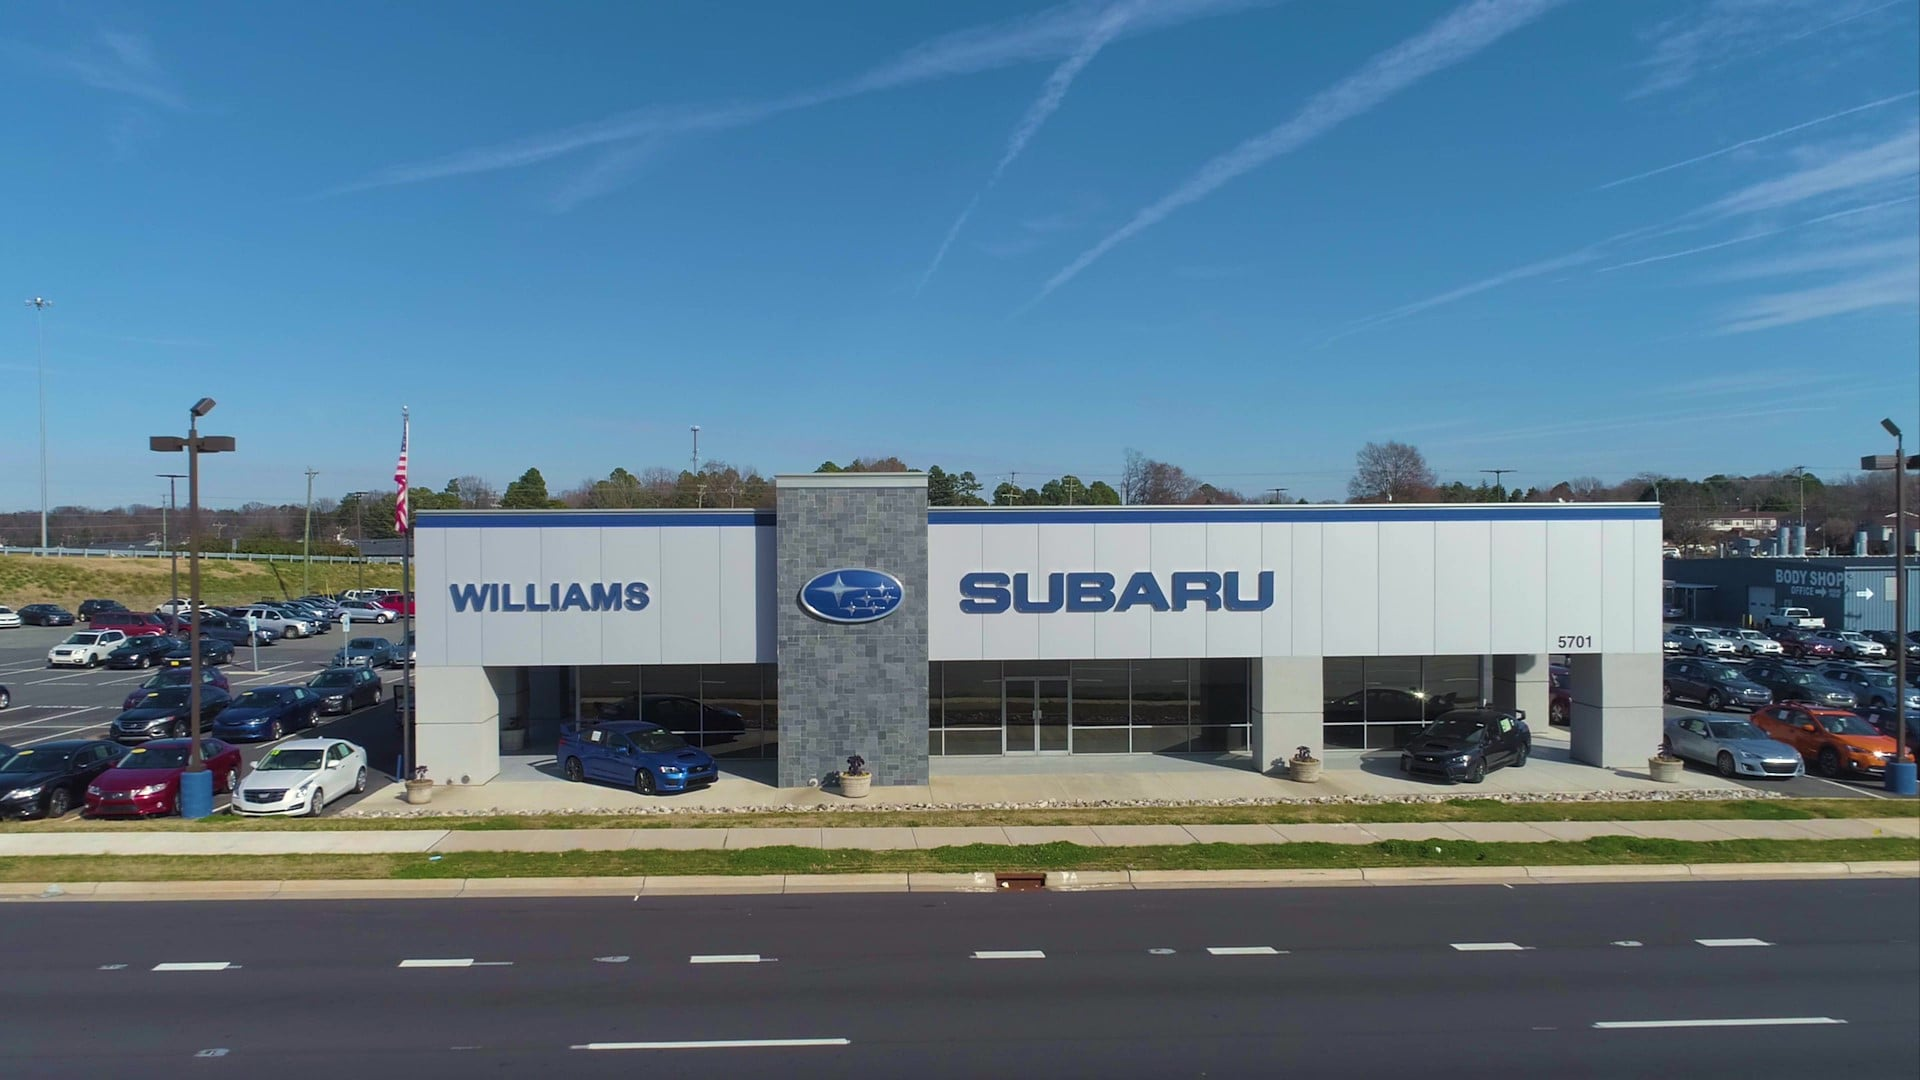 williams subaru charlotte nc new used subaru dealership. Black Bedroom Furniture Sets. Home Design Ideas